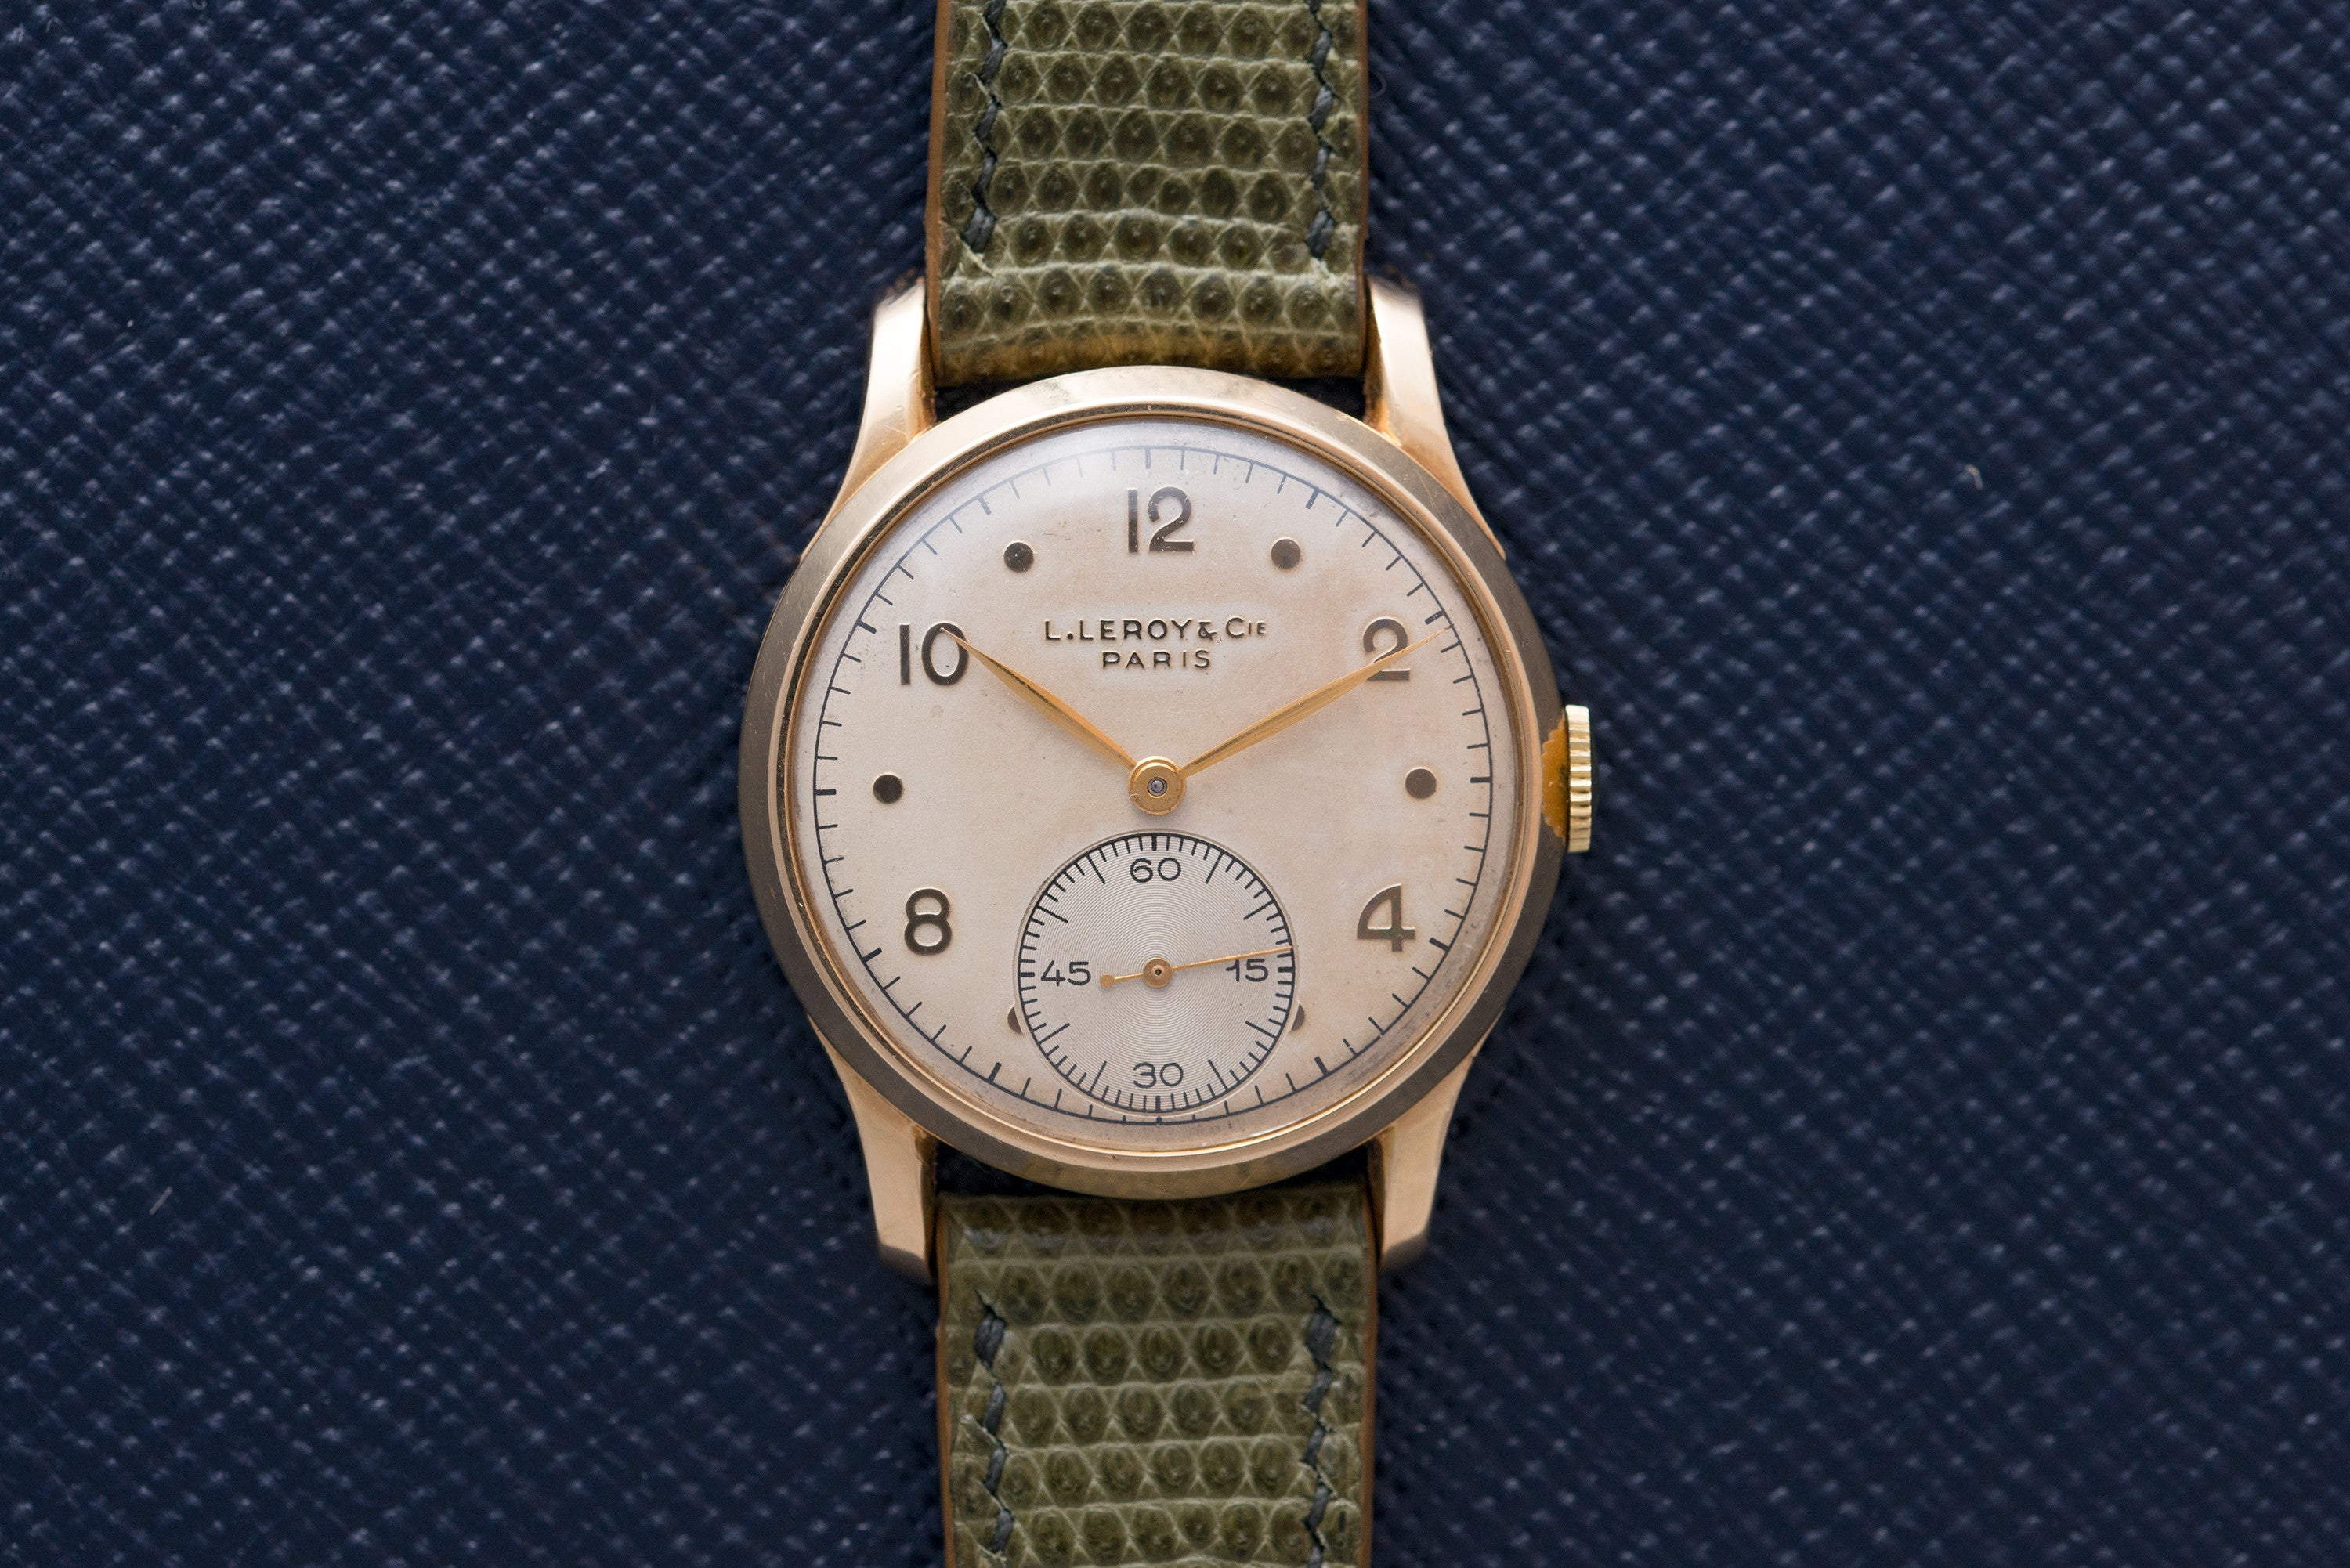 Leroy chronometre-graded watch by the Besançon Observatoryat A Collected Man - seller of rare vintage watches